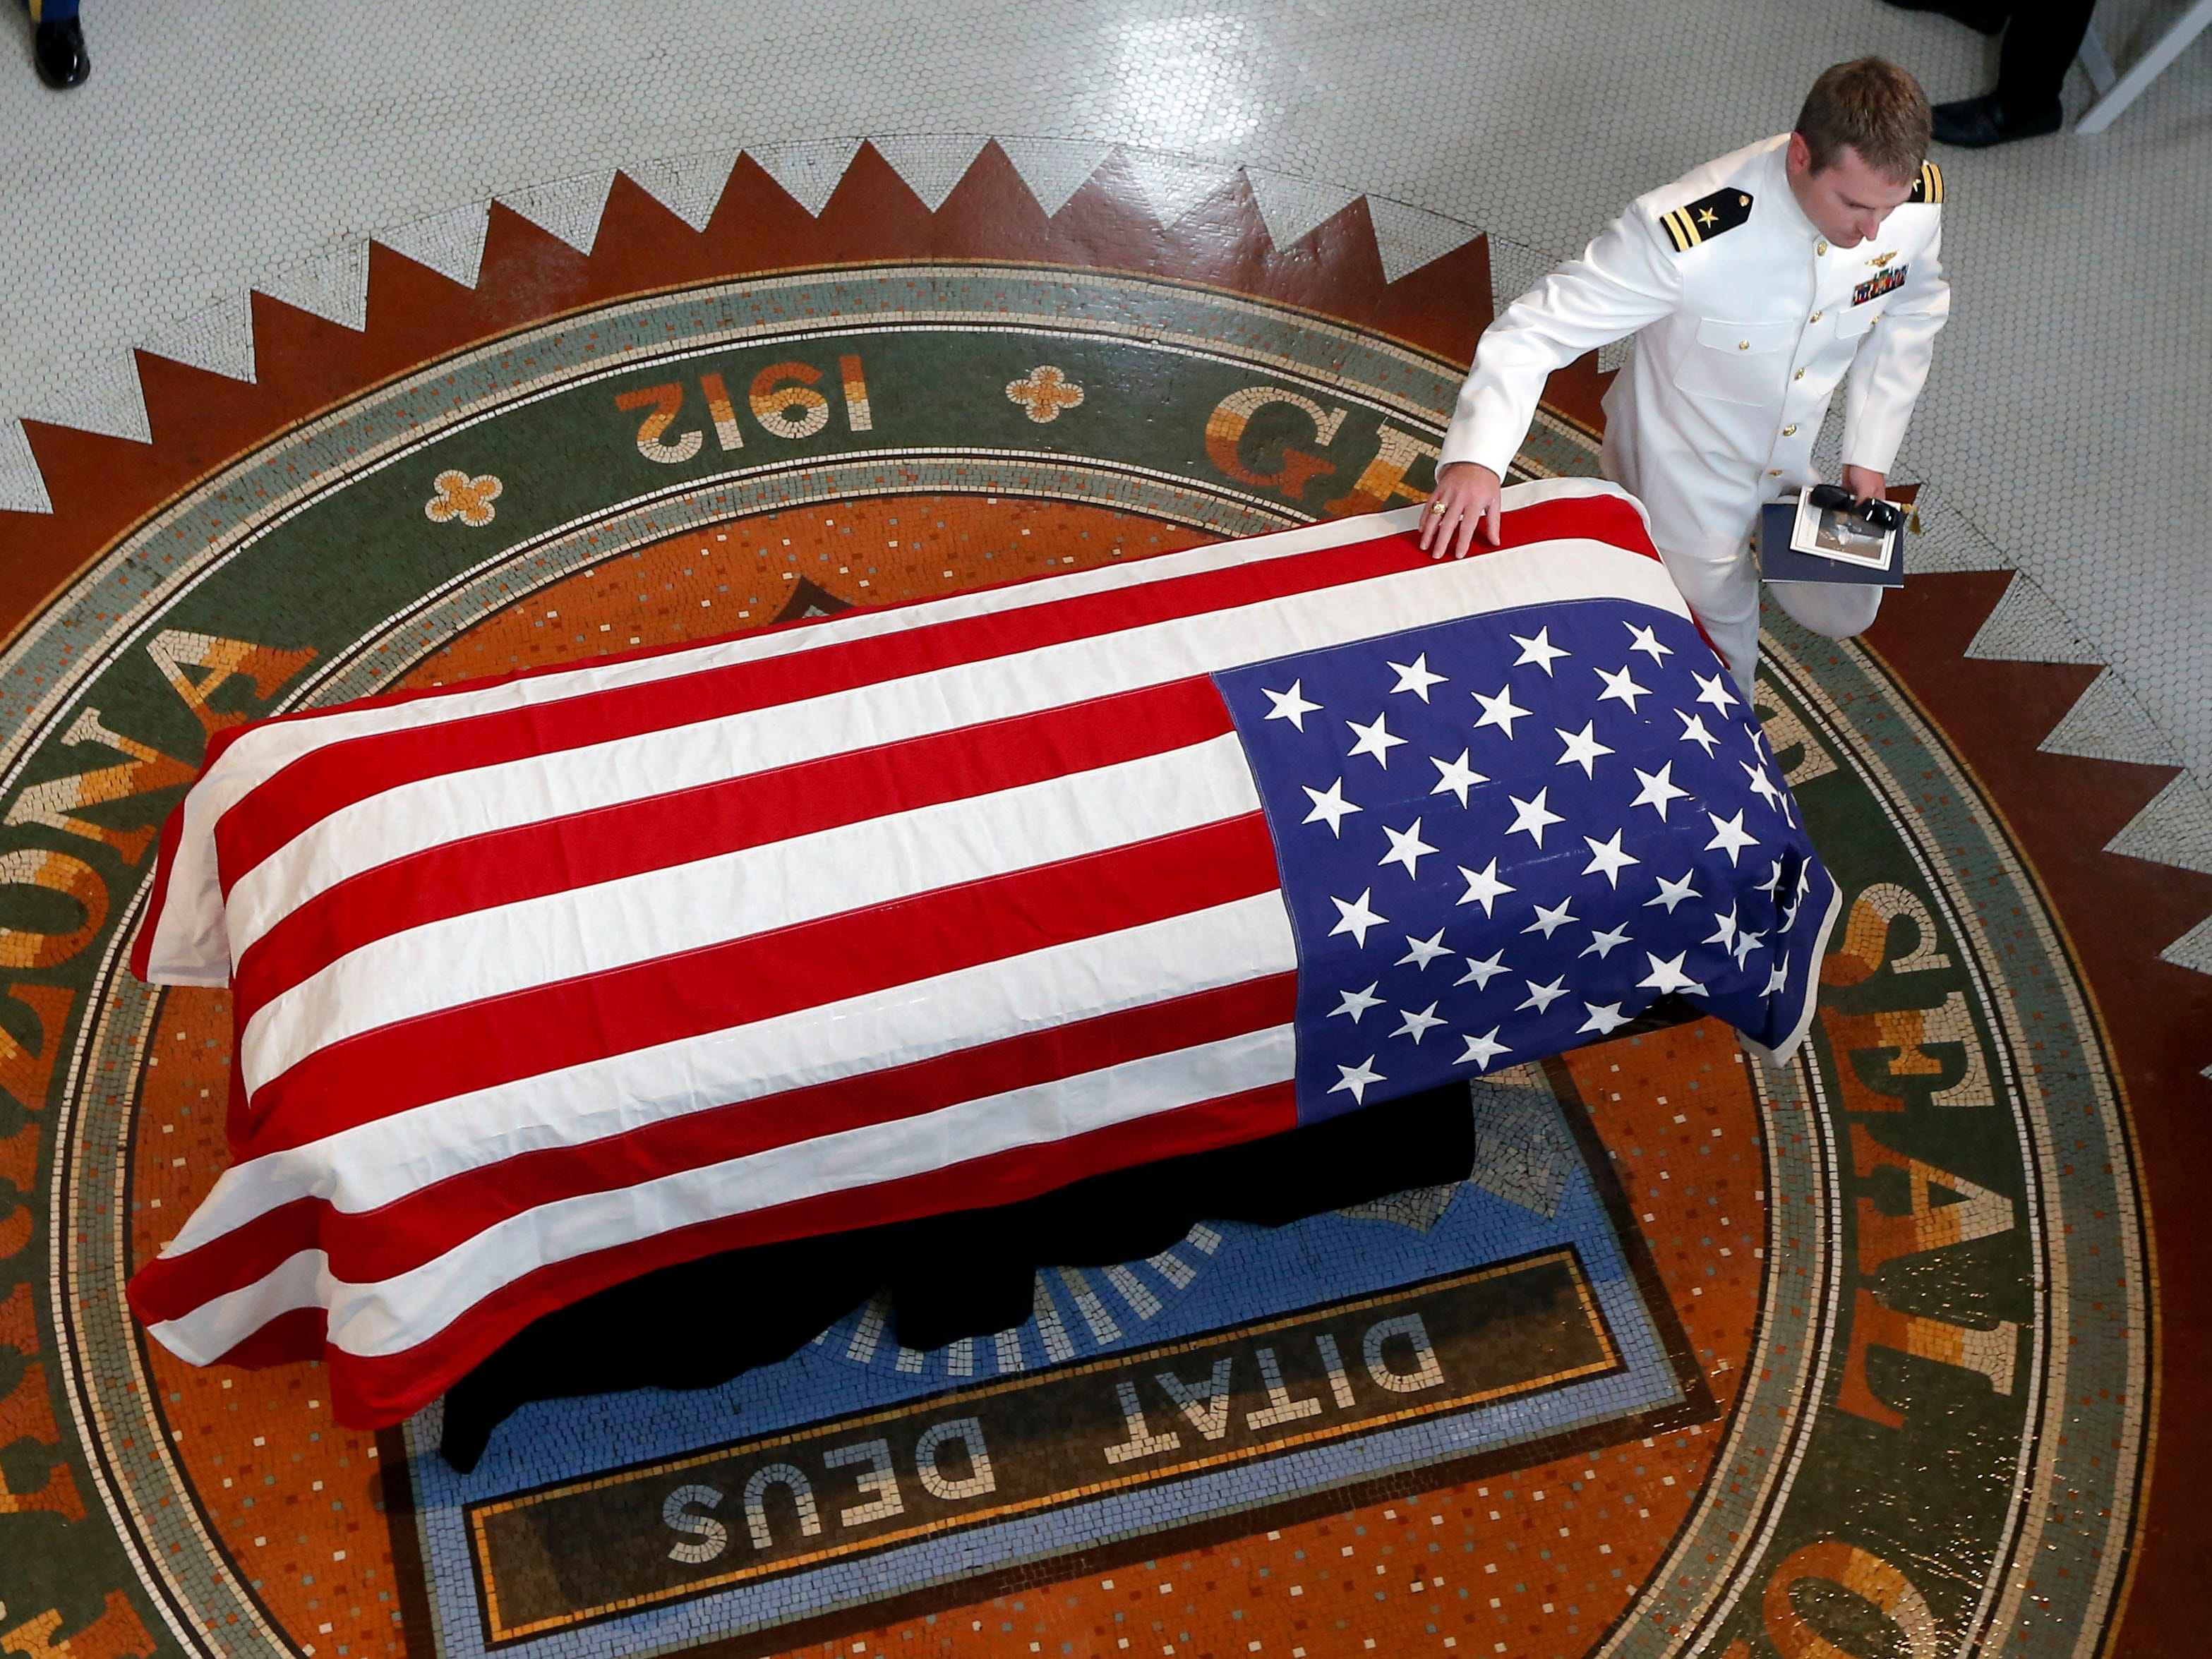 Jack McCain, son of Sen. John McCain, R-Ariz., touches the casket during a memorial service at the Arizona Capitol on Aug. 29, 2018, in Phoenix.